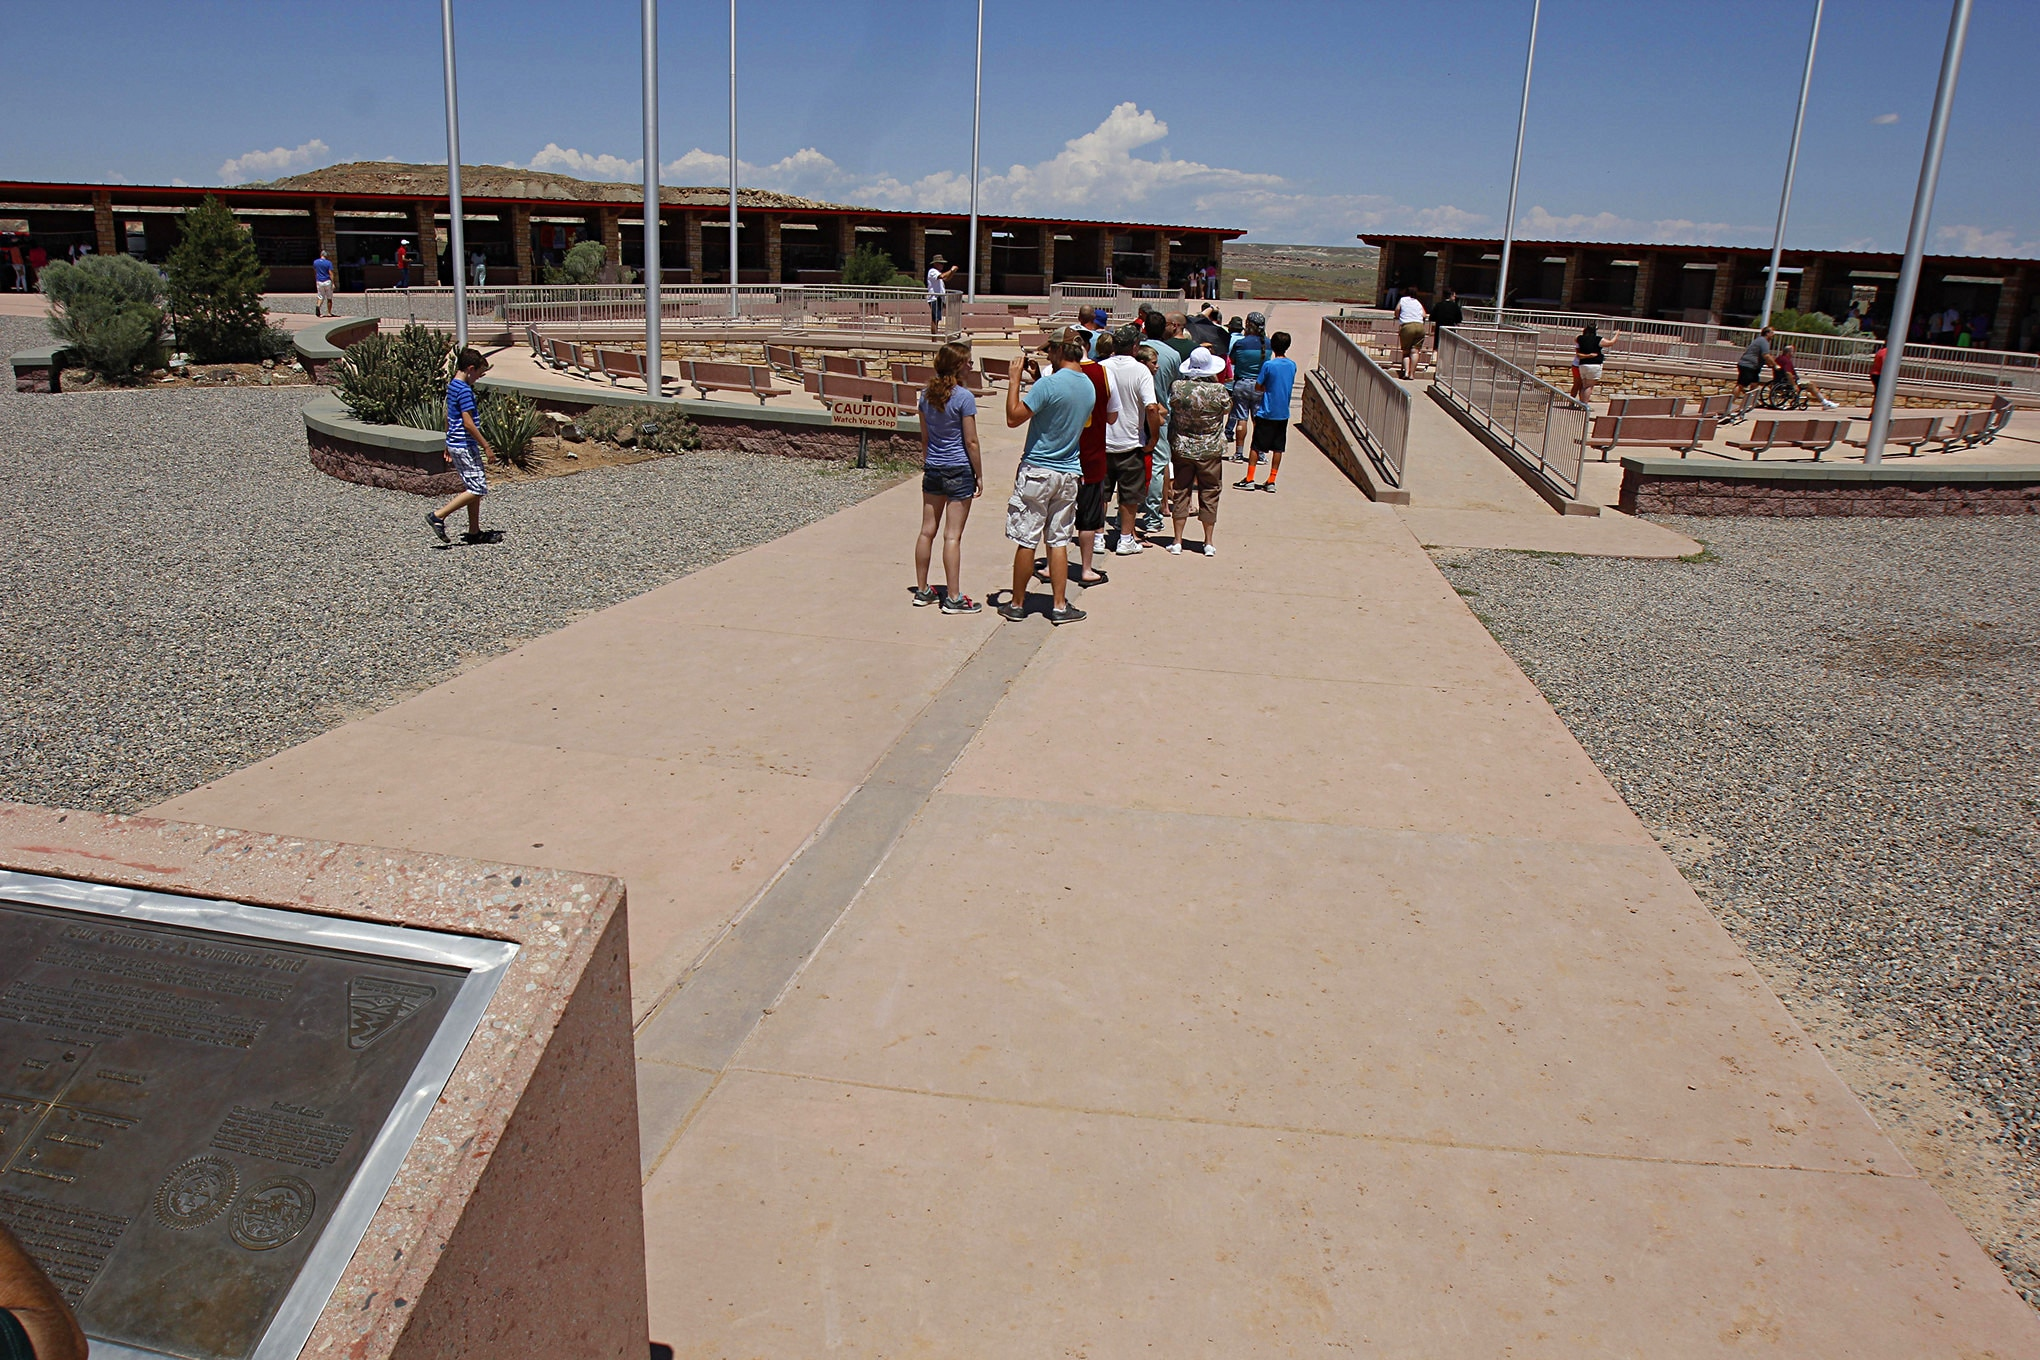 The Four Corners Monument is the one place in the country where you can stand in four states at one time. It's where the borders of Colorado, New Mexico, Arizona, and Utah meet, and people line up to have their pictures taken on the marker where all four states meet.